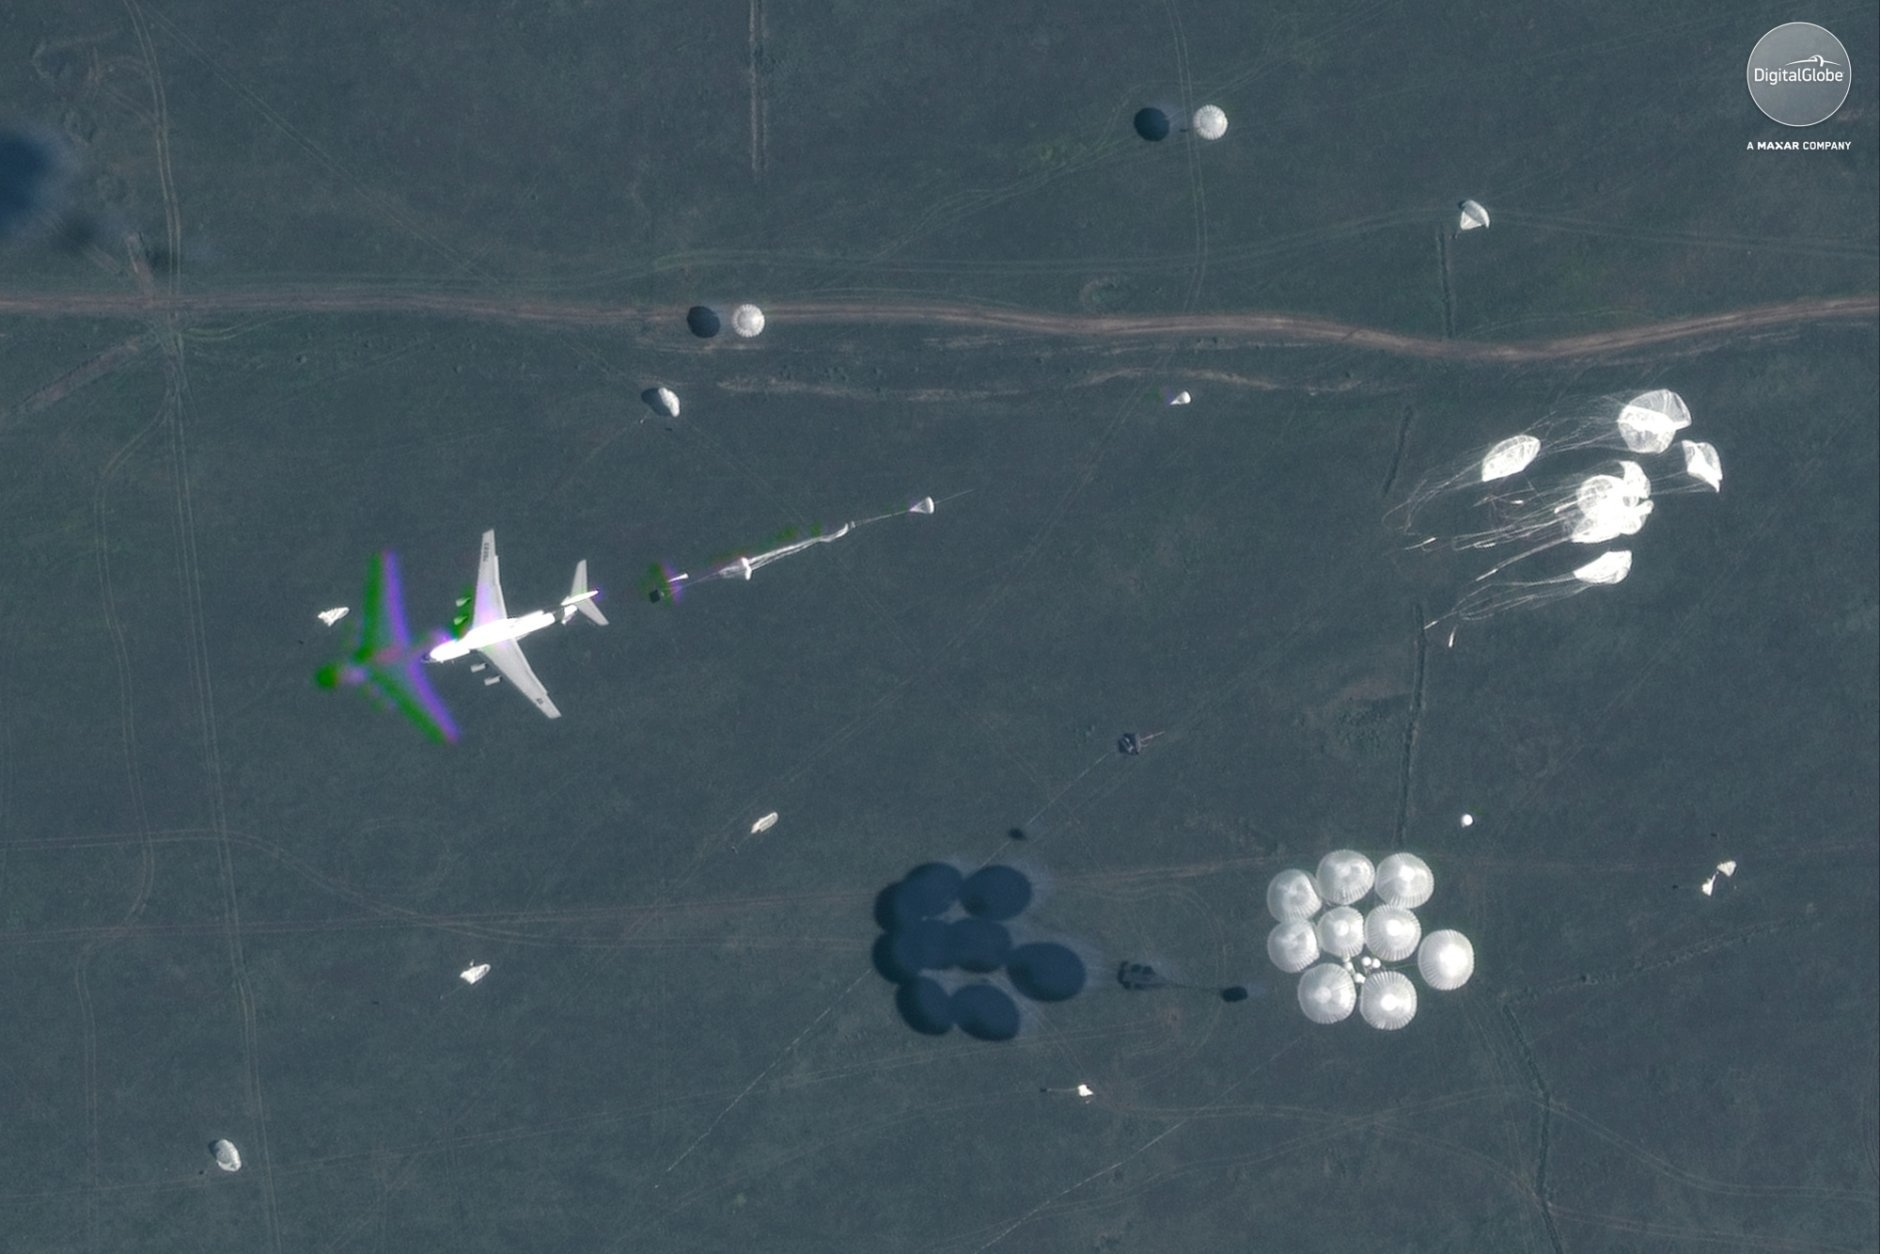 This Sept. 13, 2018 satellite image provided by DigitalGlobe shows an airborne paradrop during the Vostok military exercises in the Eastern Siberia area of Russia. (DigitalGlobe, a Maxar company via AP)